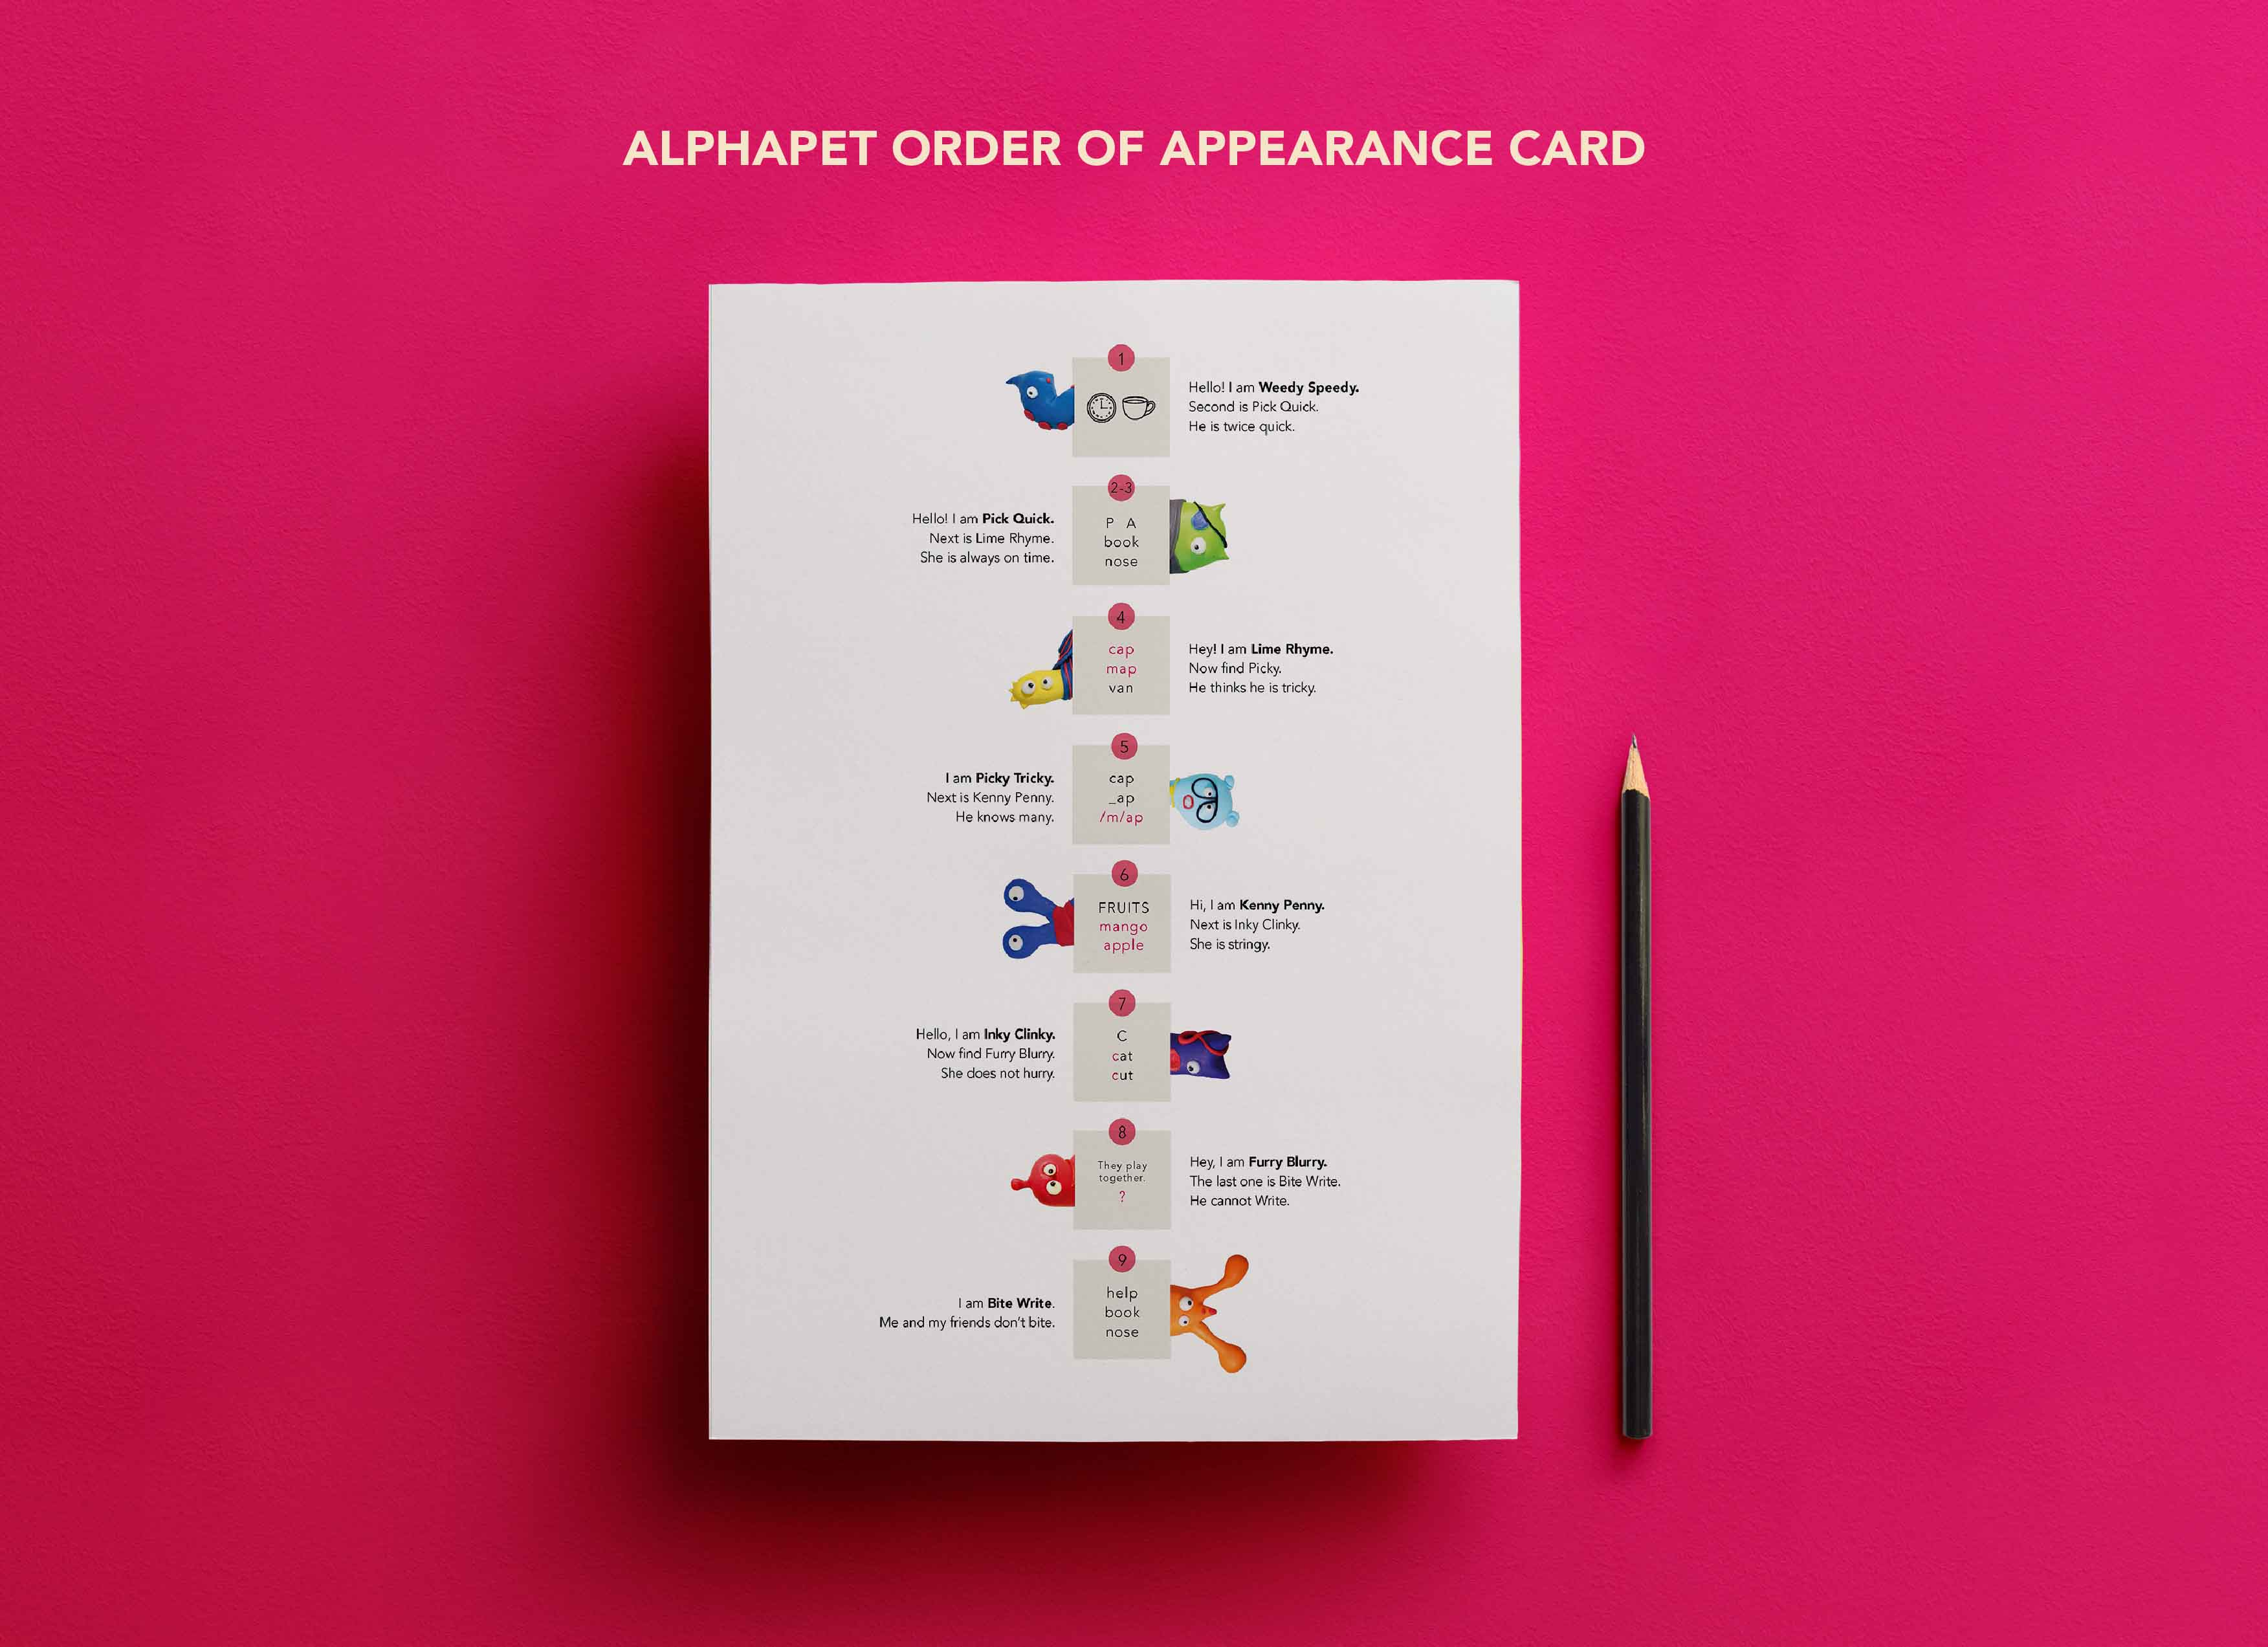 Order of Appearance Card